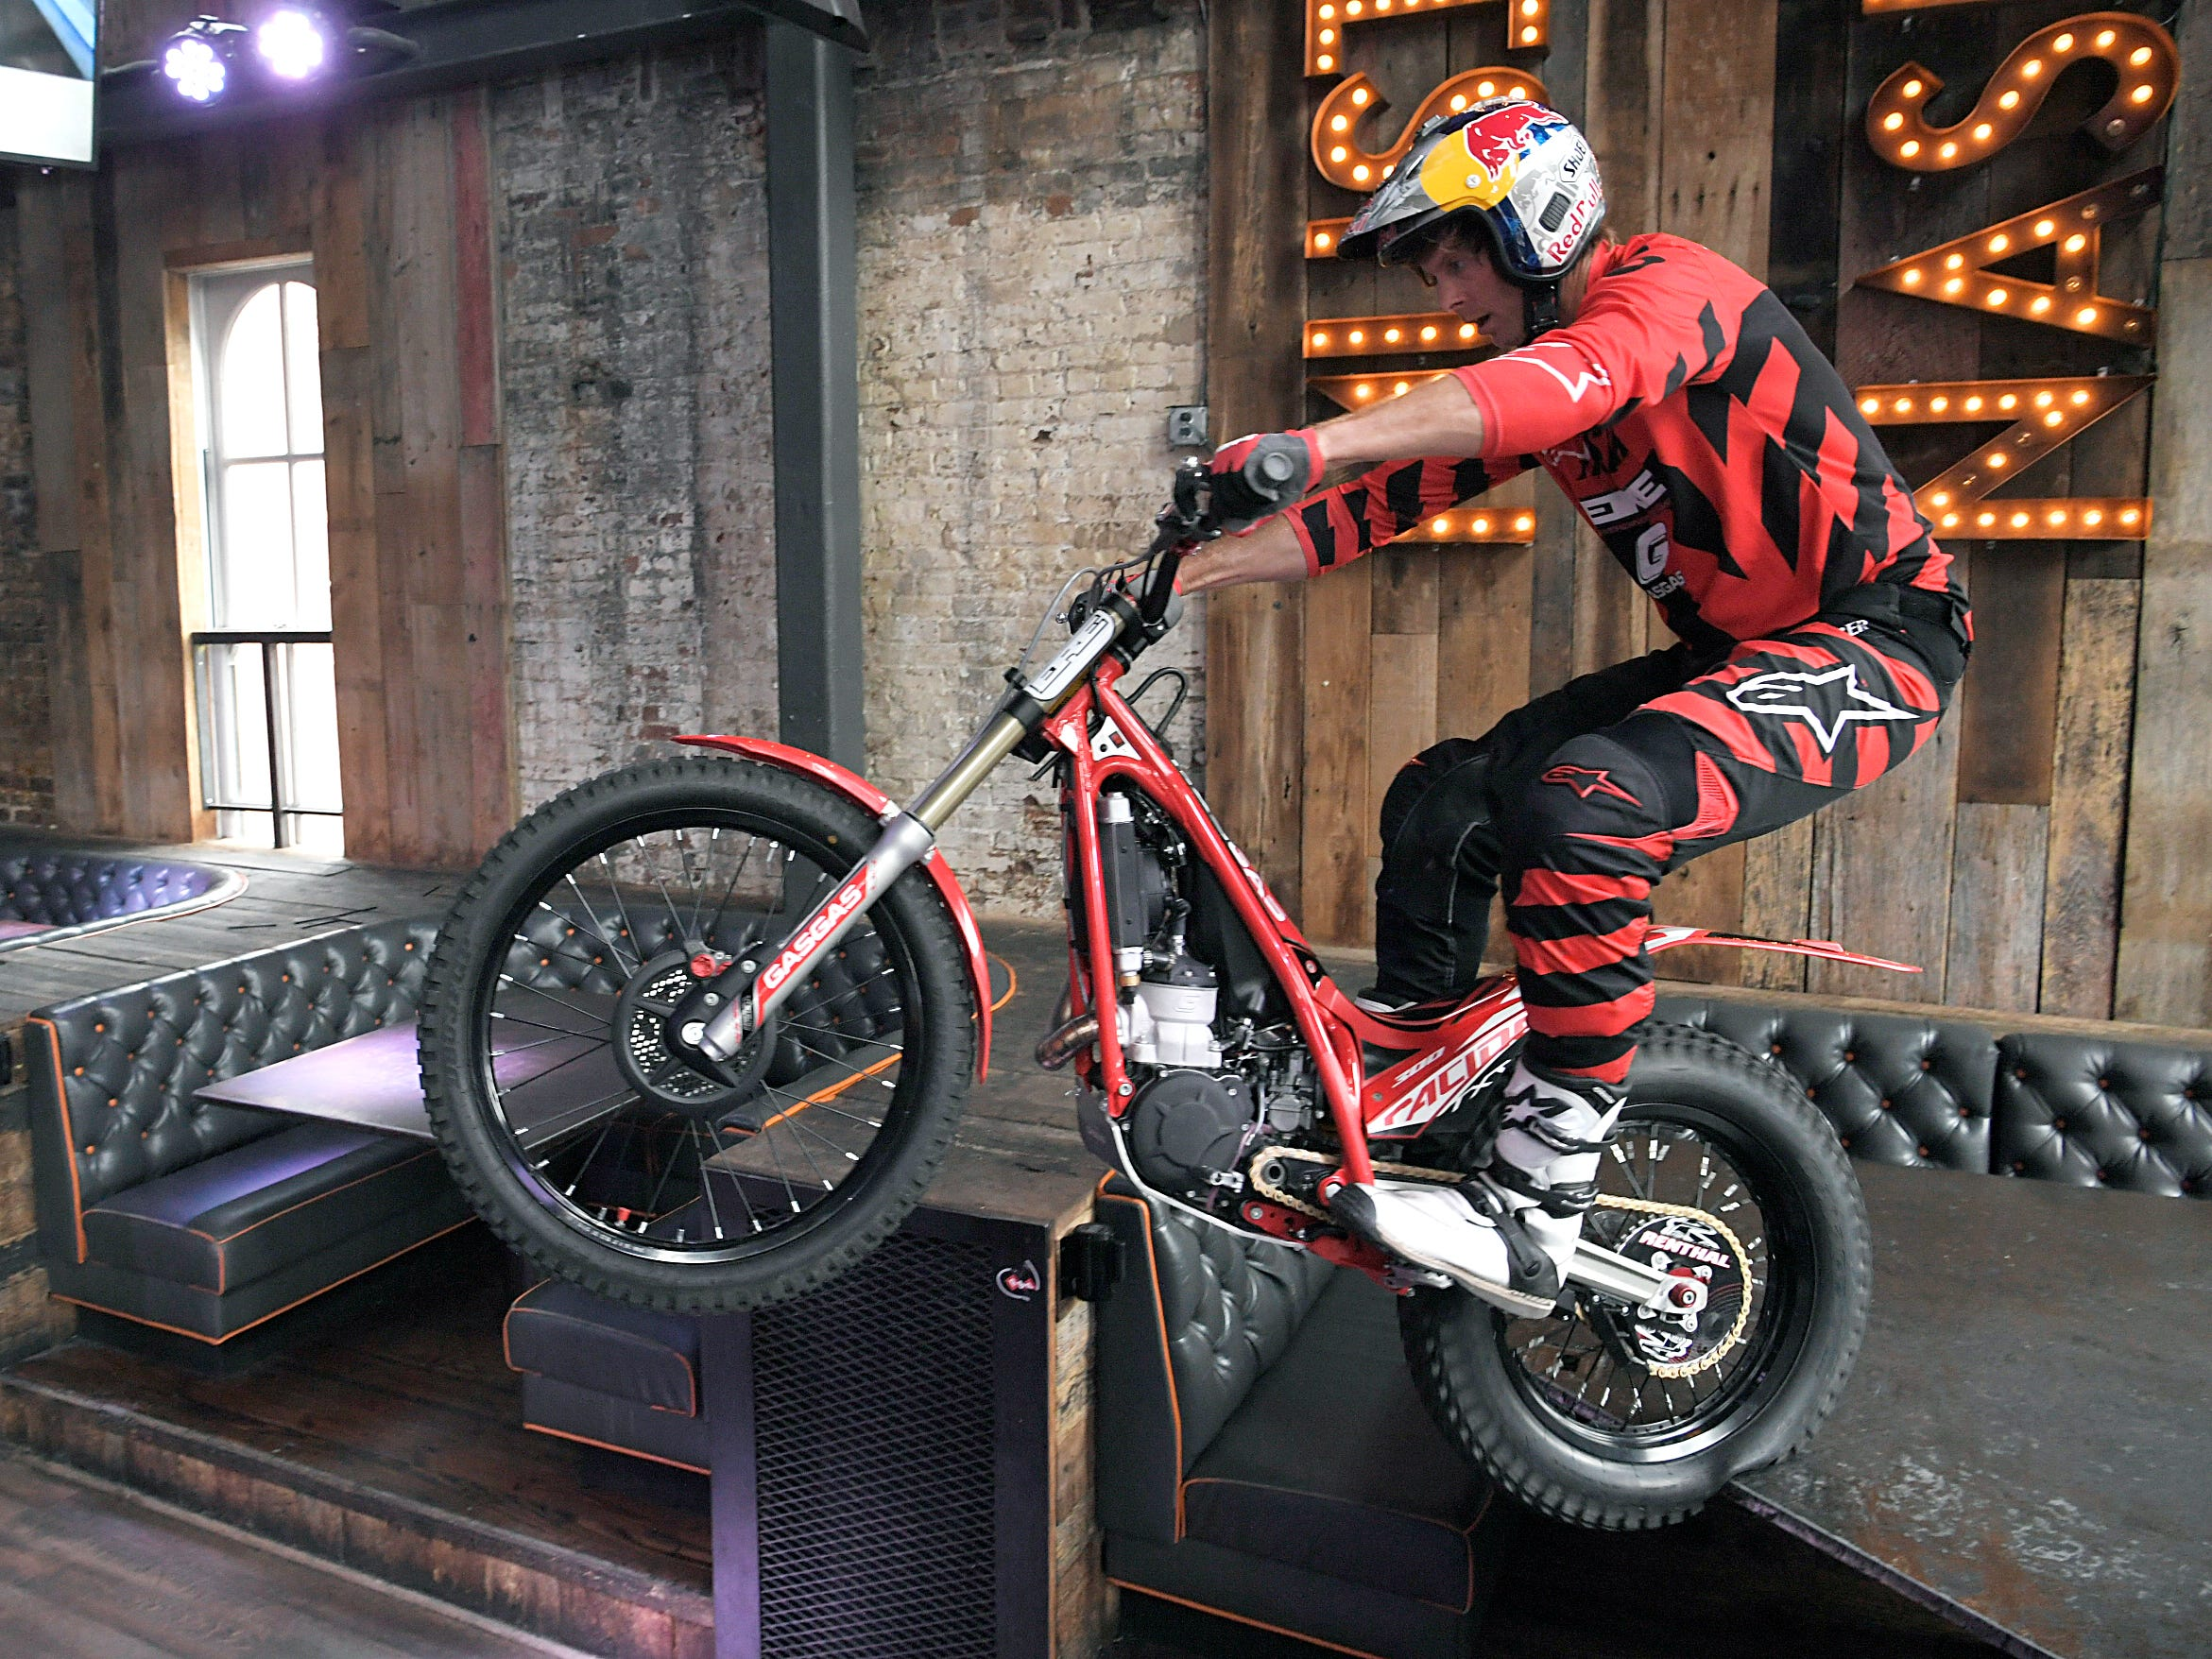 Trial motorcyclist Geoff Aaron performs stunts inside Dierks Bentley's Whiskey Row on Broadway on Thursday, April 4, 2019. The trials and endurocross legend is in town for the Motocross-Supercross event.